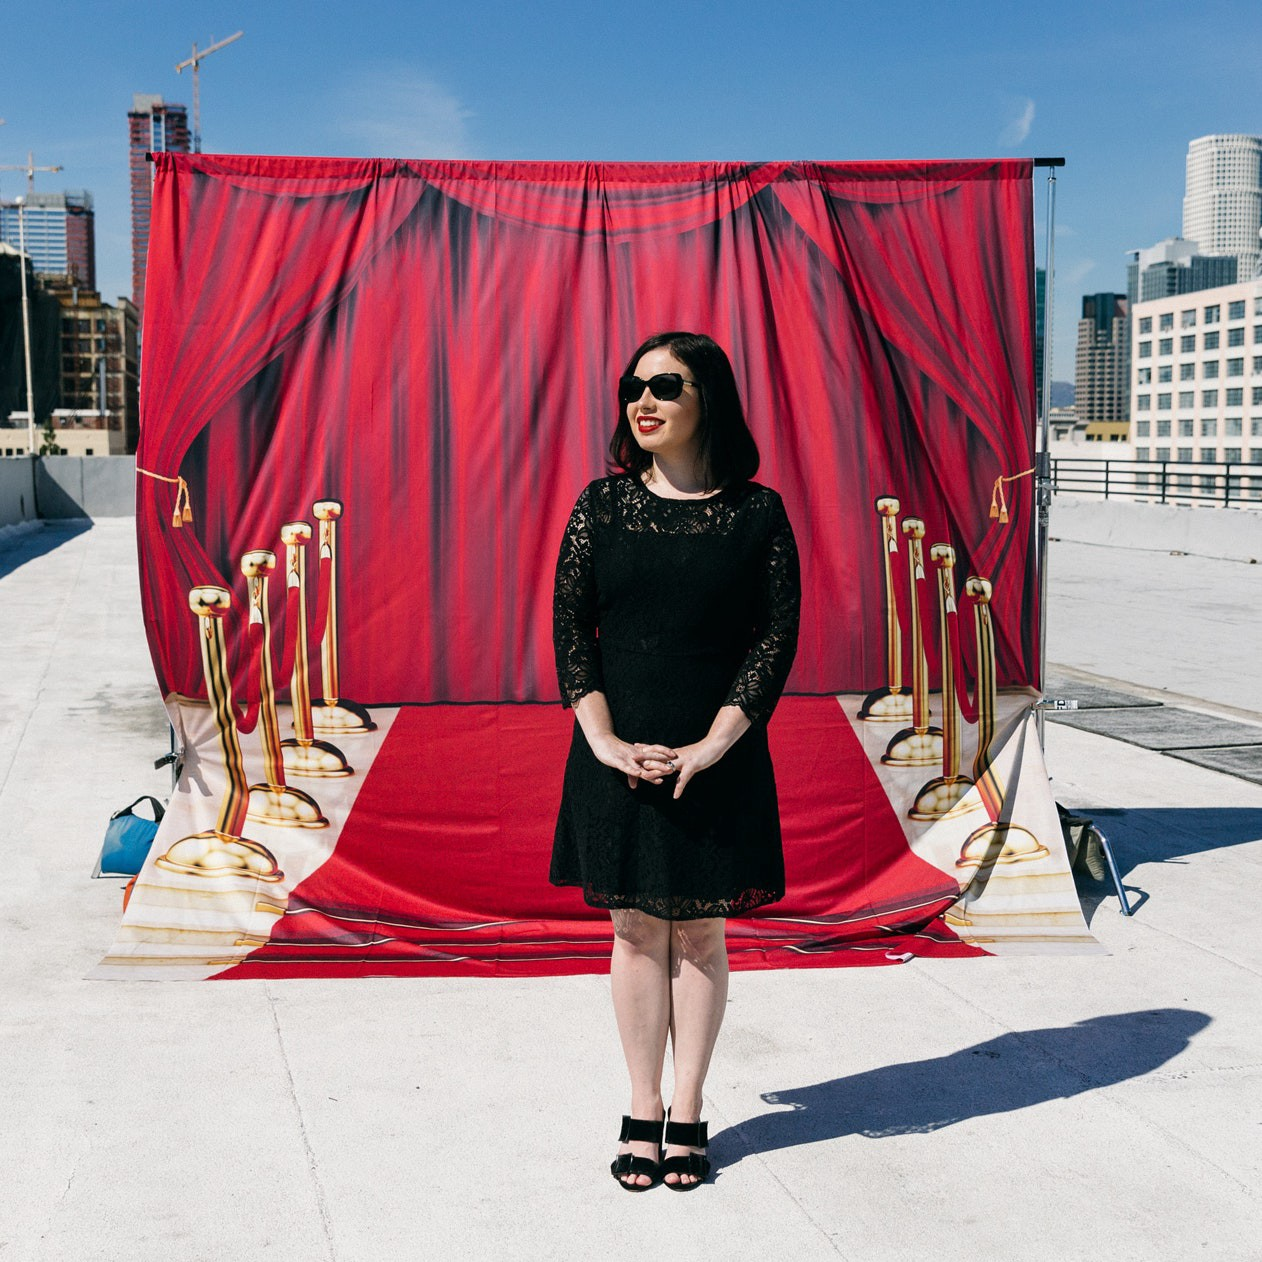 Lindsay Ellis in a black dress and black sunglasses standing with her hands figleafed together, in front of a red carpet and fake red curtain backdrop on an obviously fake set build around the city in daylight